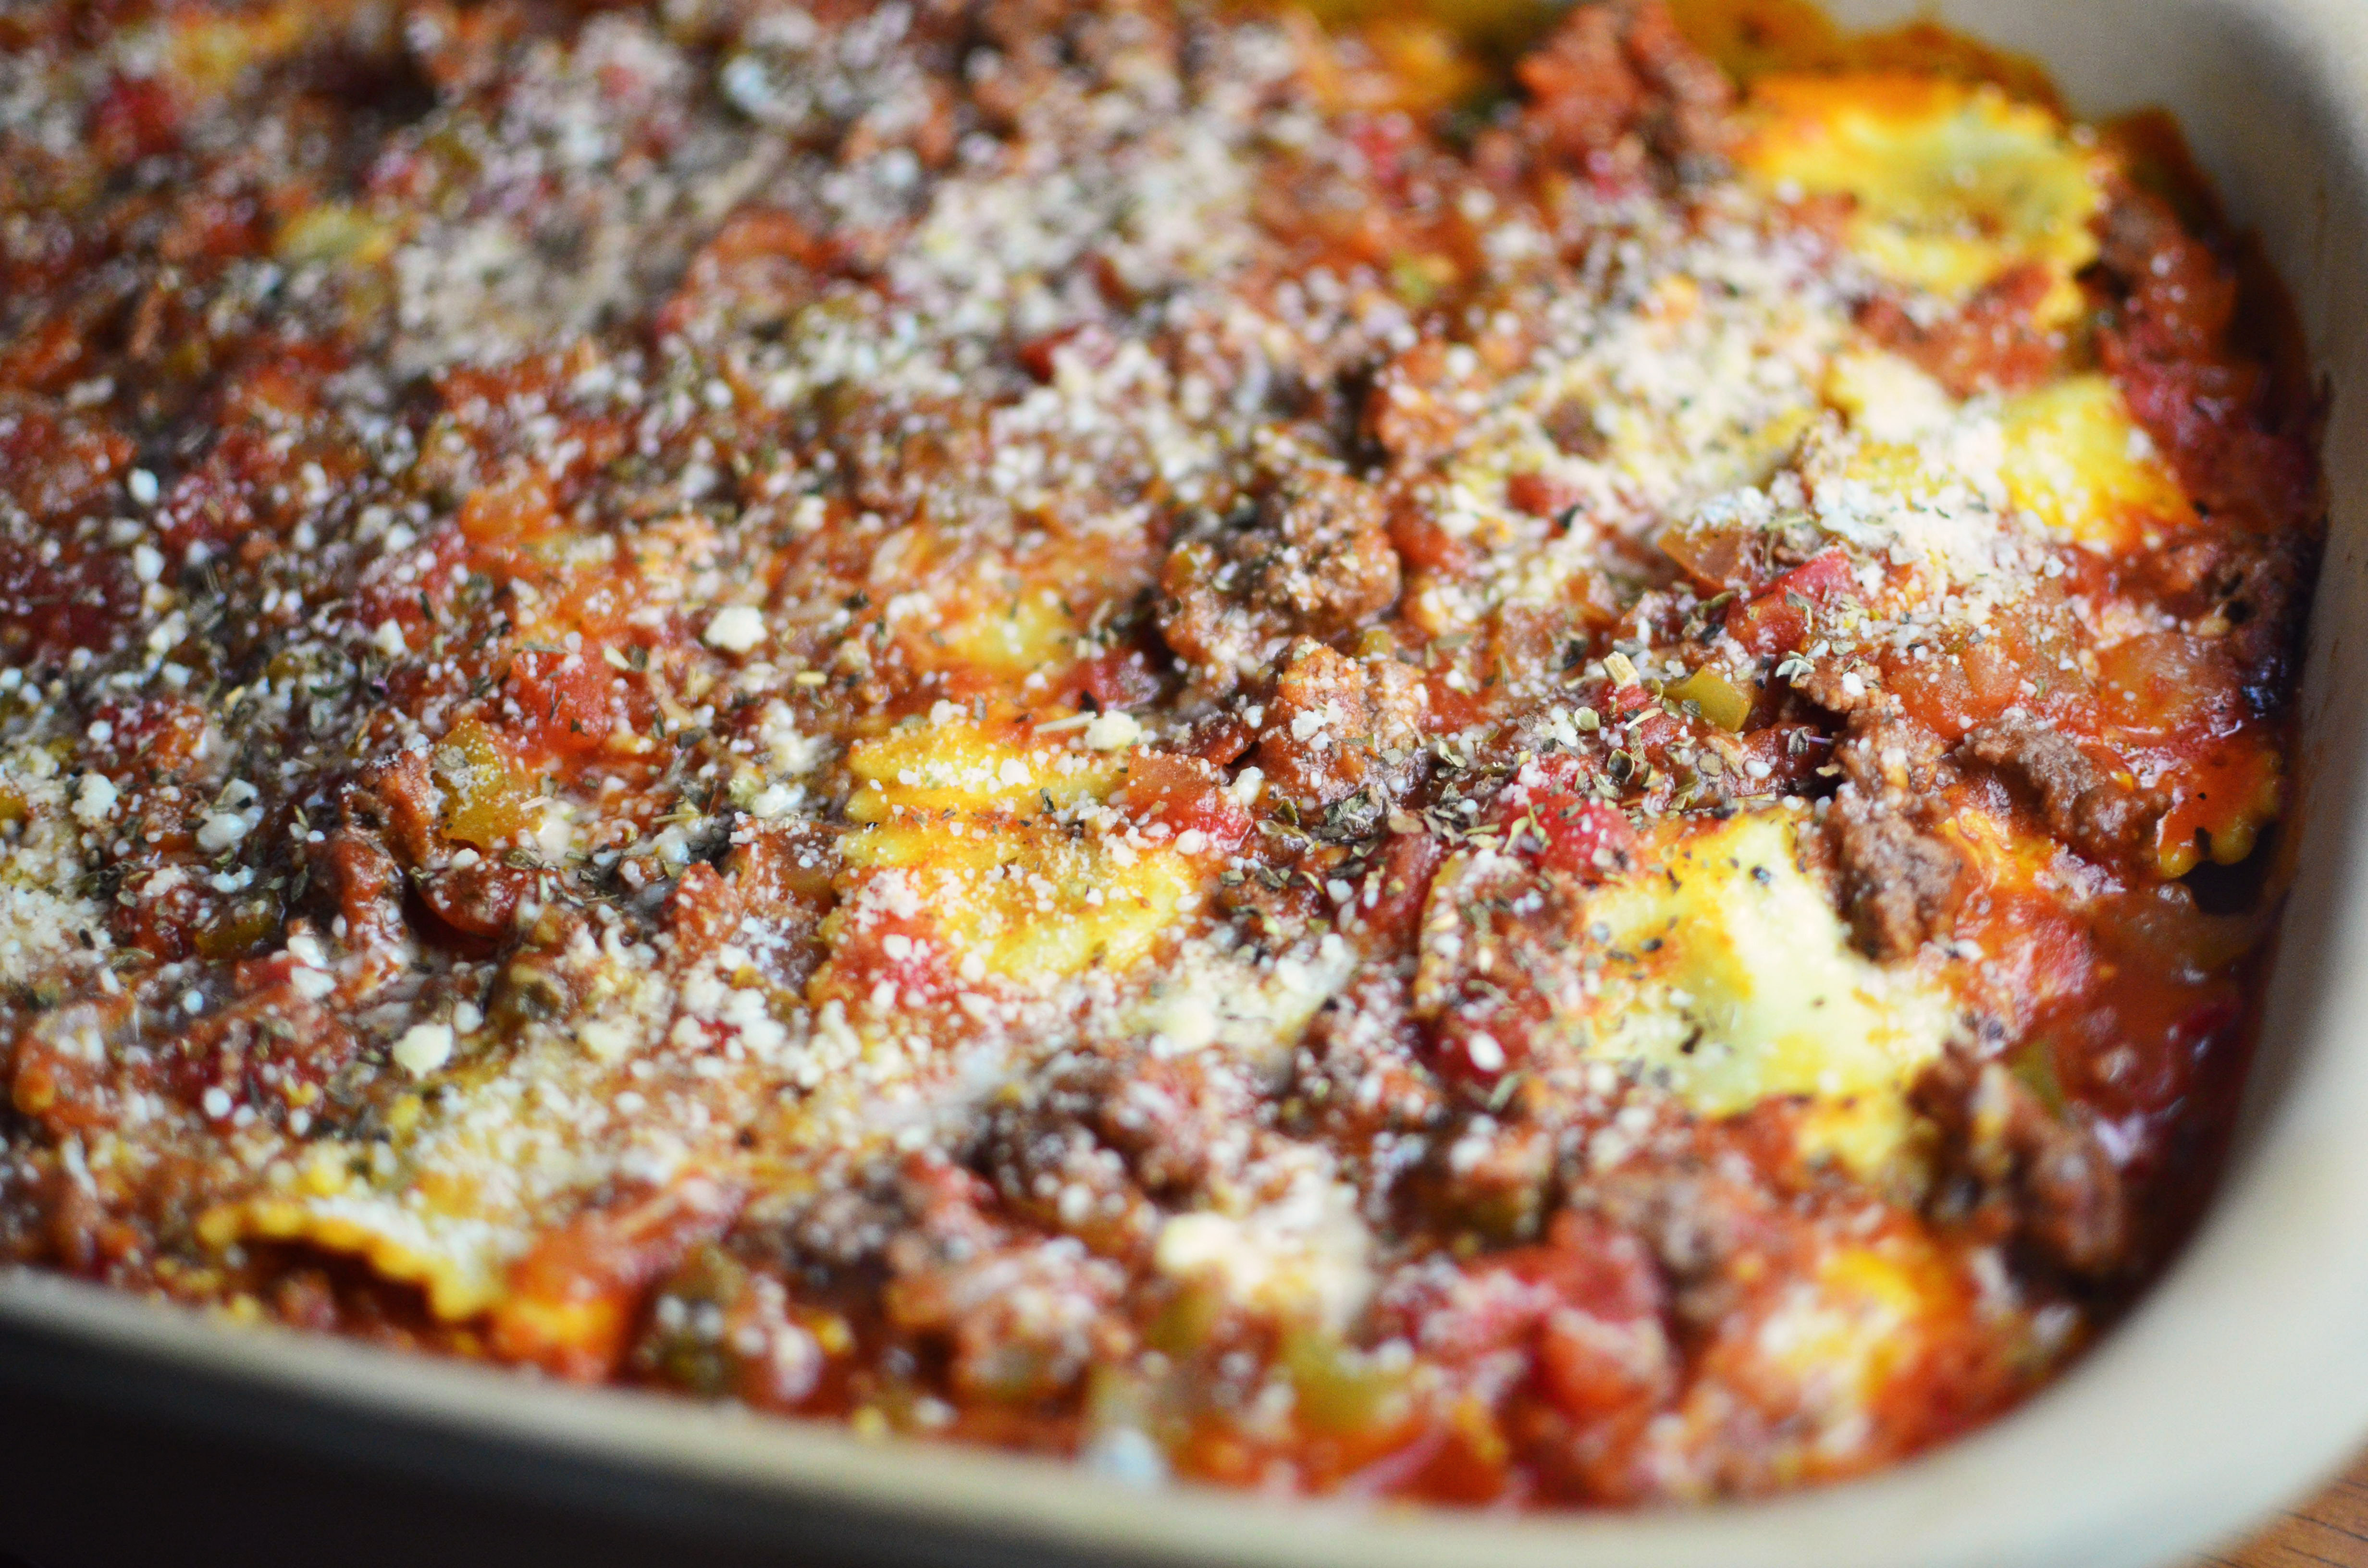 Baked Ravioli with Meat Sauce - Simple, Sweet & Savory